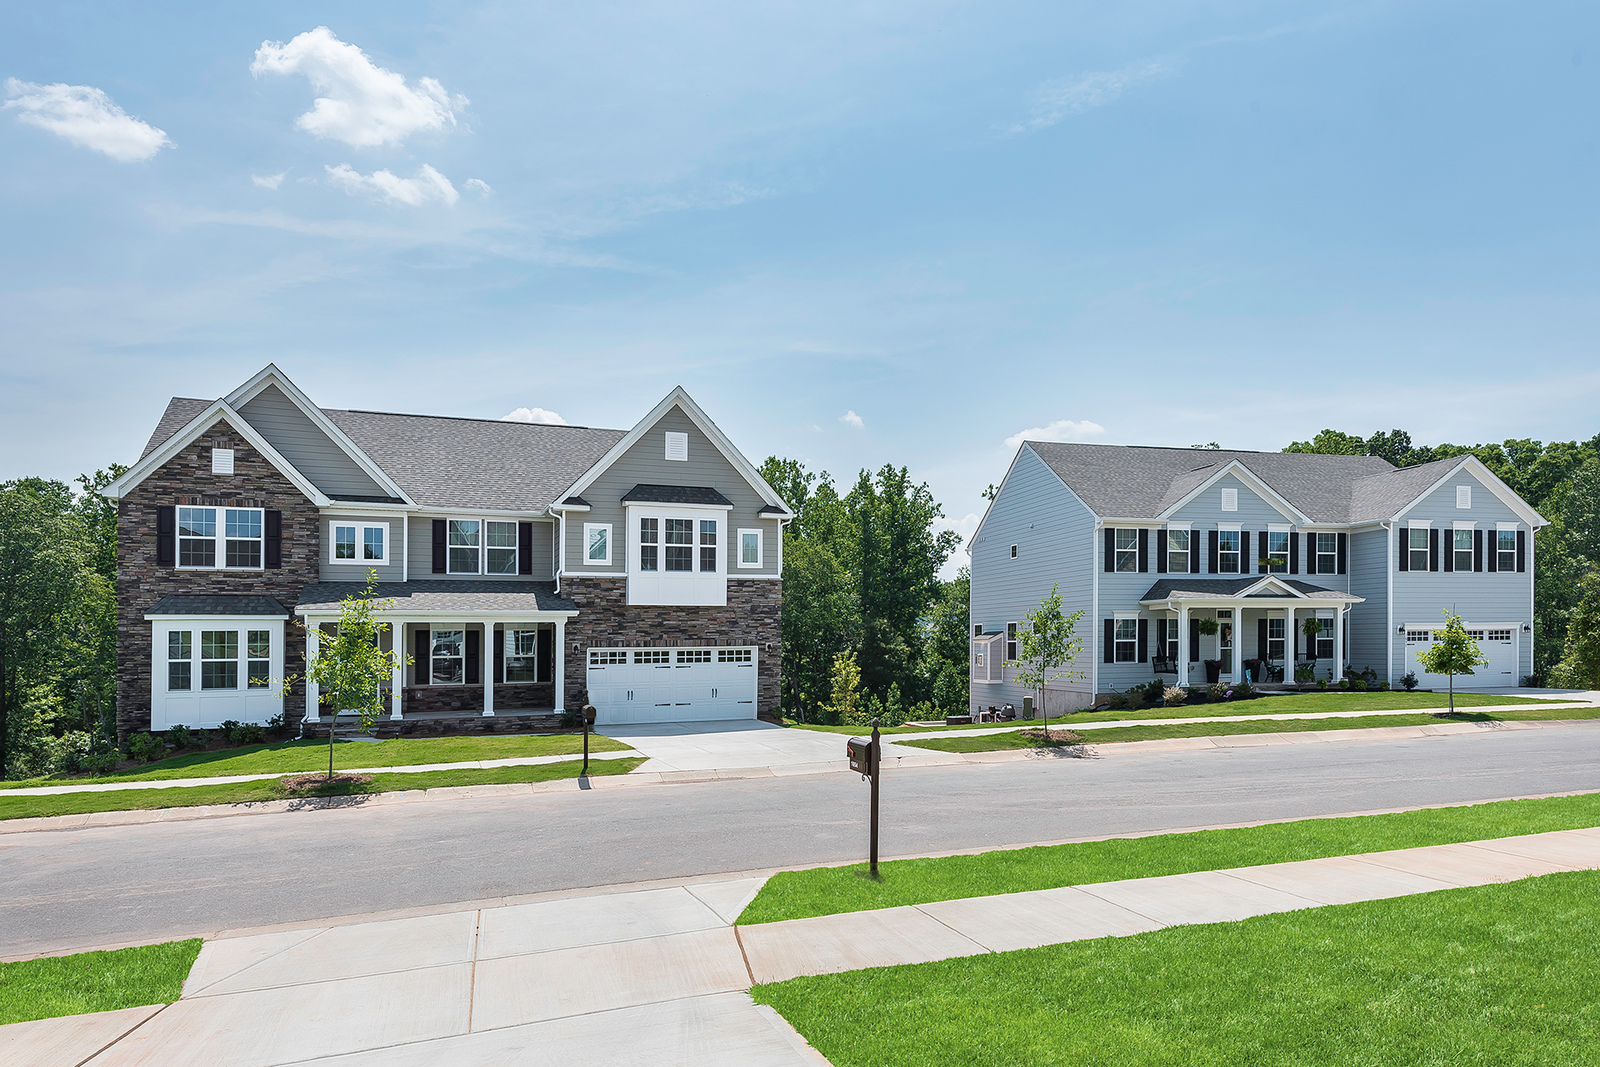 New Homes For Sale At Massey In Fort Mill Sc Within The Fort Mill